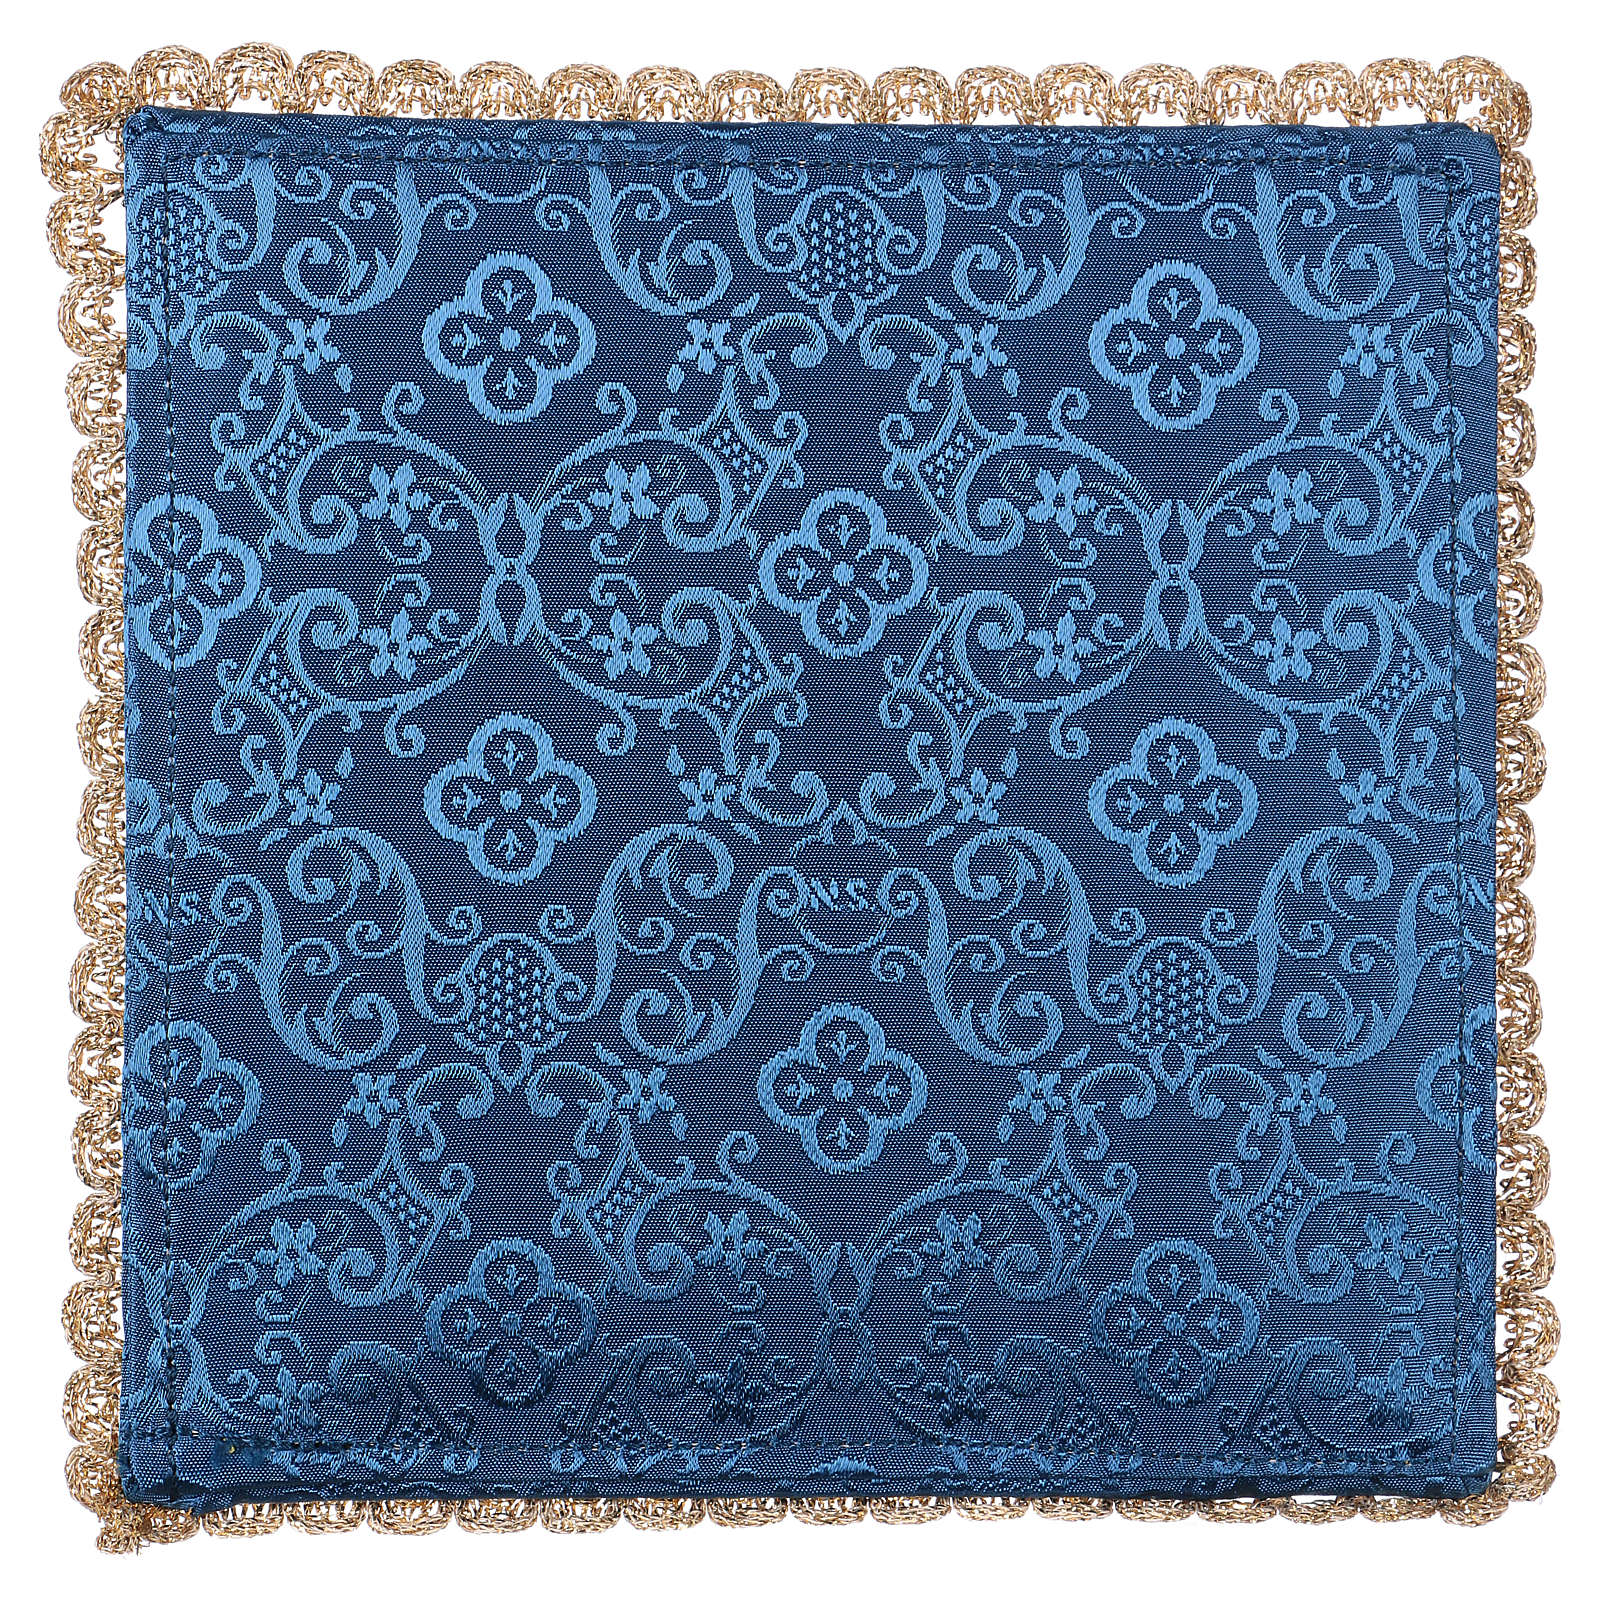 Chalice veil (pall) with chalice and grapes embroidery on blue damask fabric 4